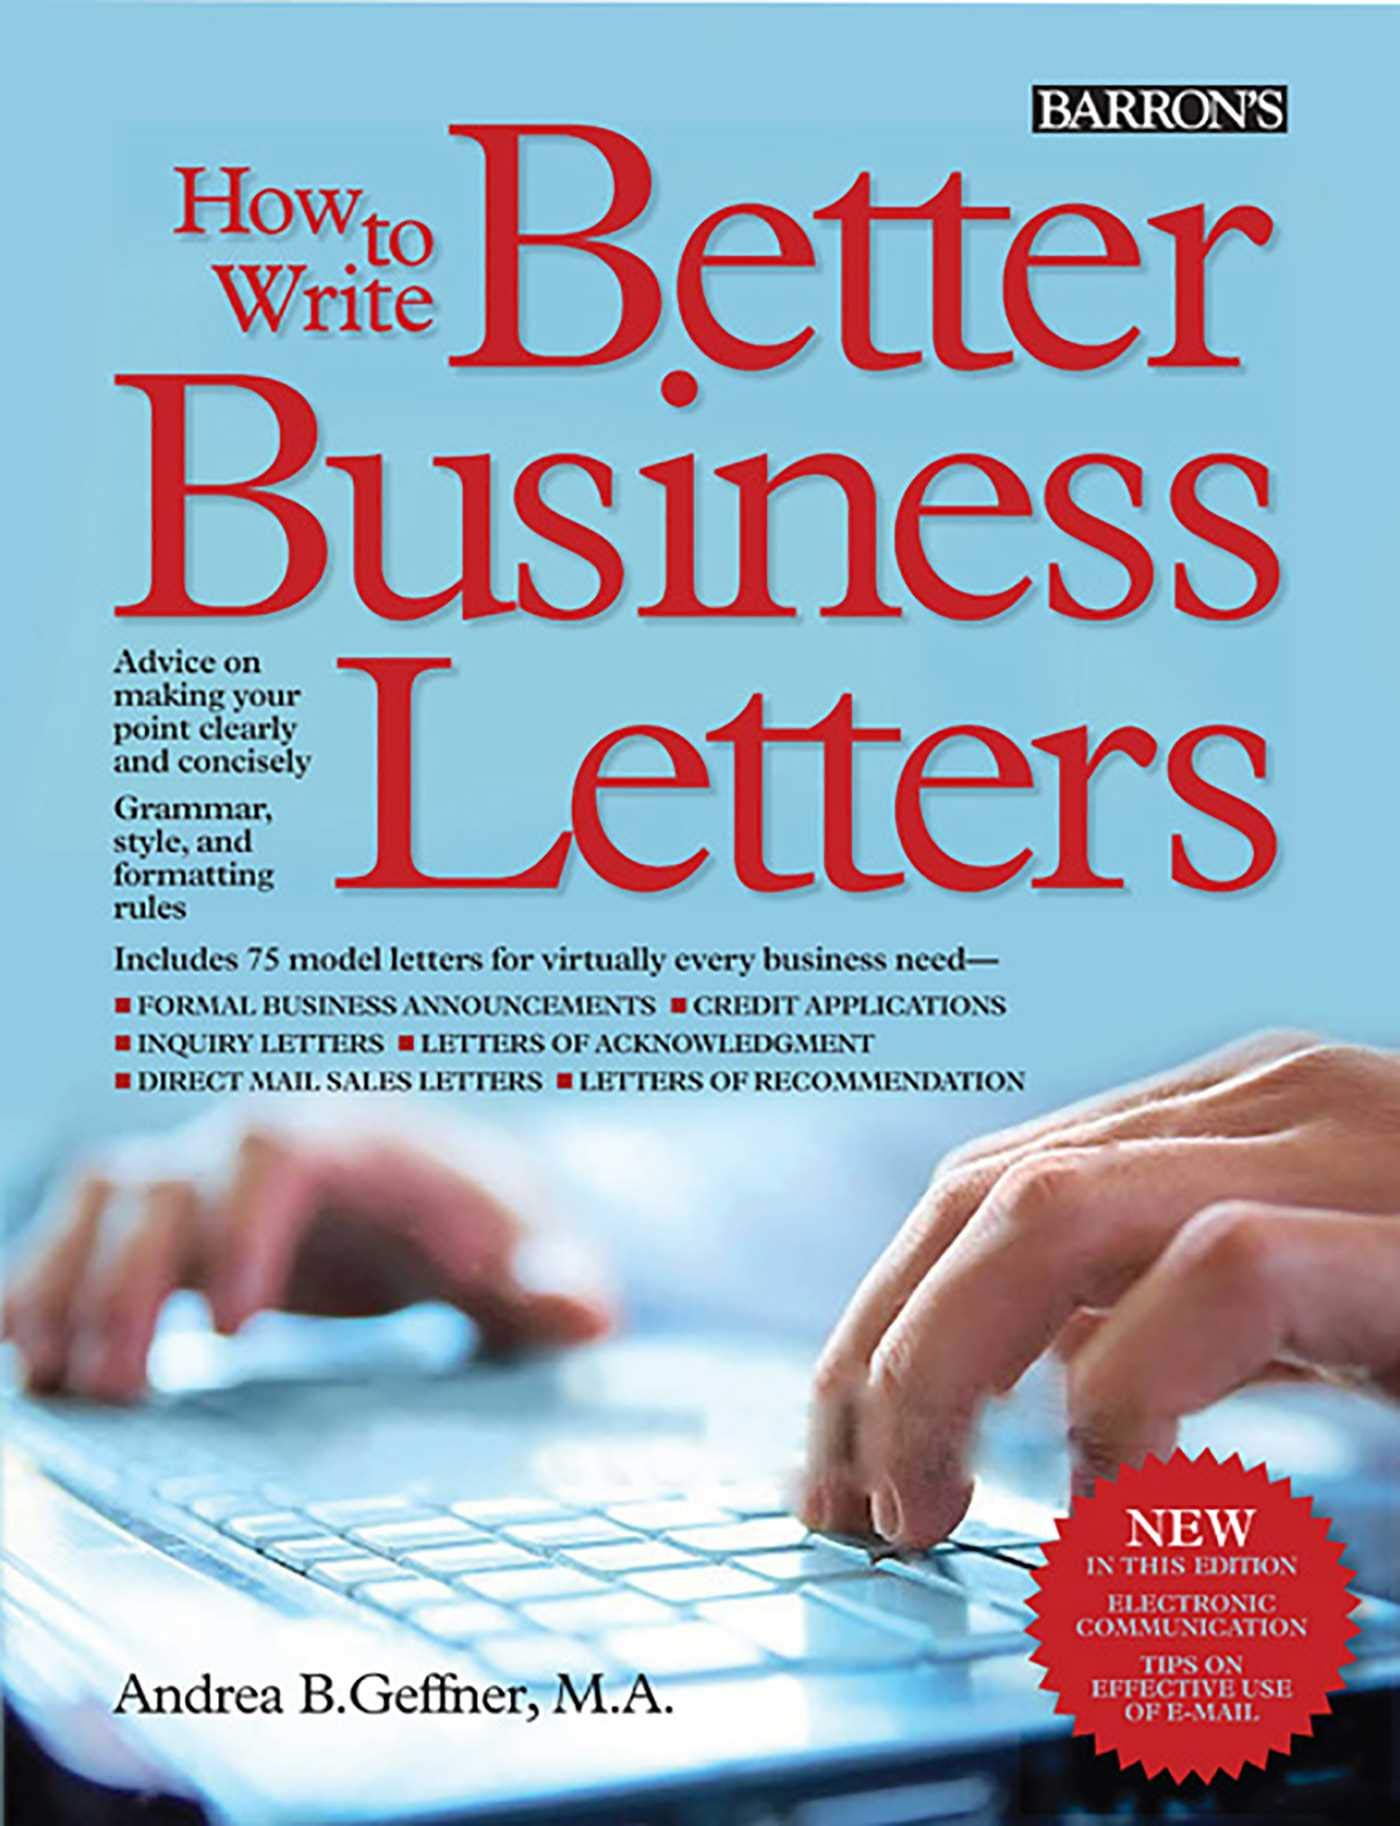 How to Write Better Business Letters (Barron's How to Write Better Business Letters) pdf